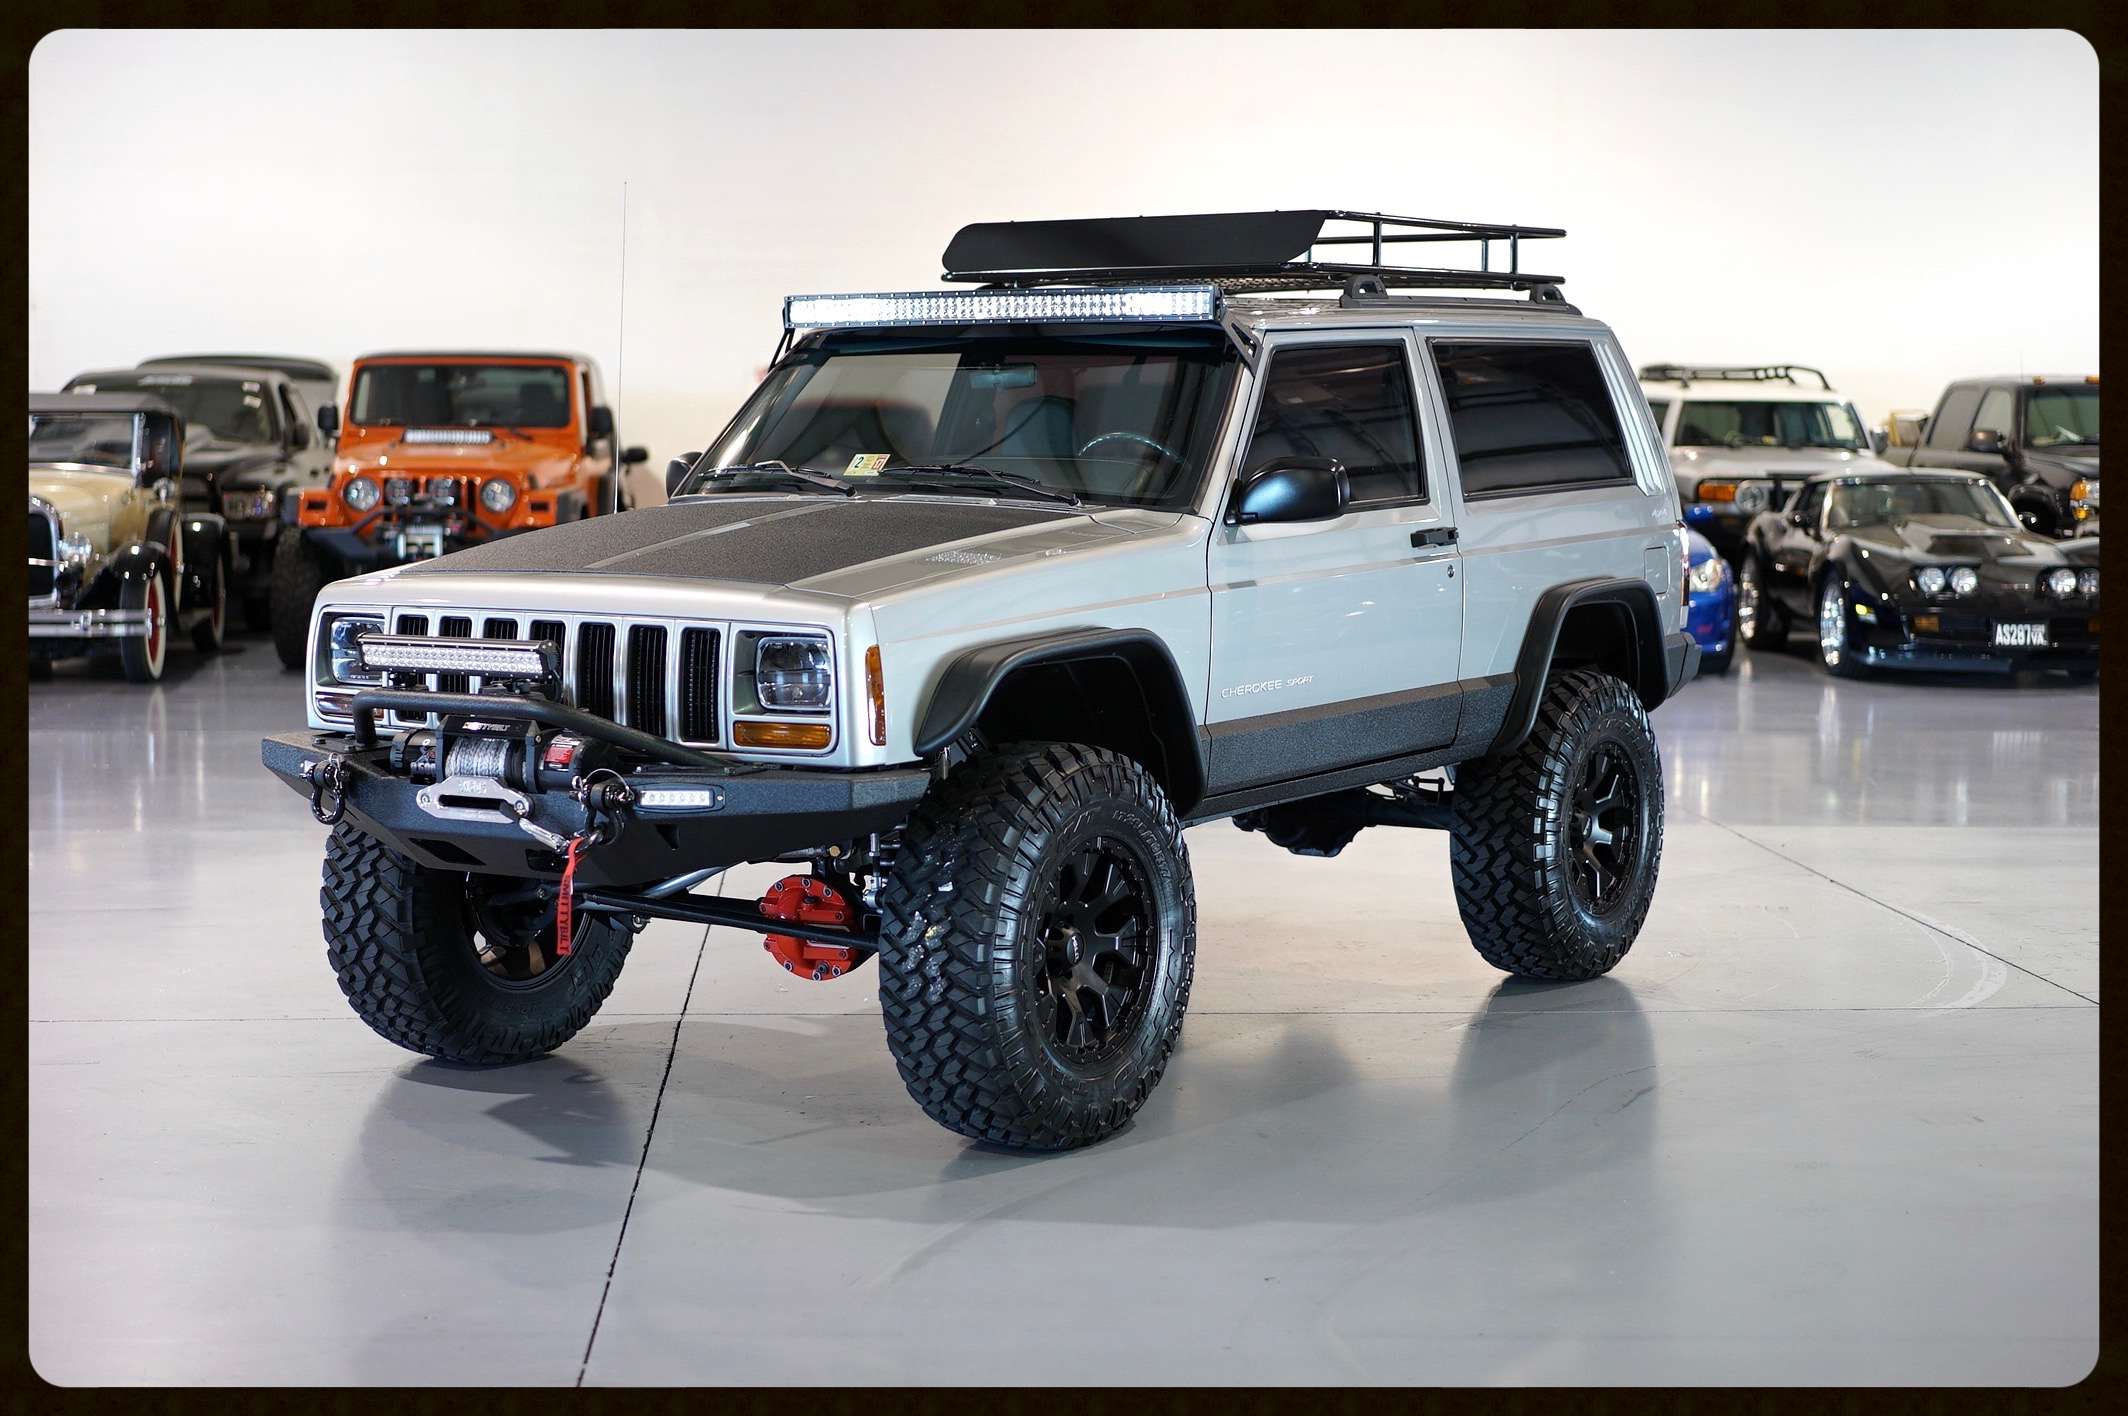 2001 XJ Stage 4+....This Awesome Jeep Came Out Great. Rubicon Express Lift,  Fox Shocks,  ARB, Custom Leather Seats and Full Audio / Navigation